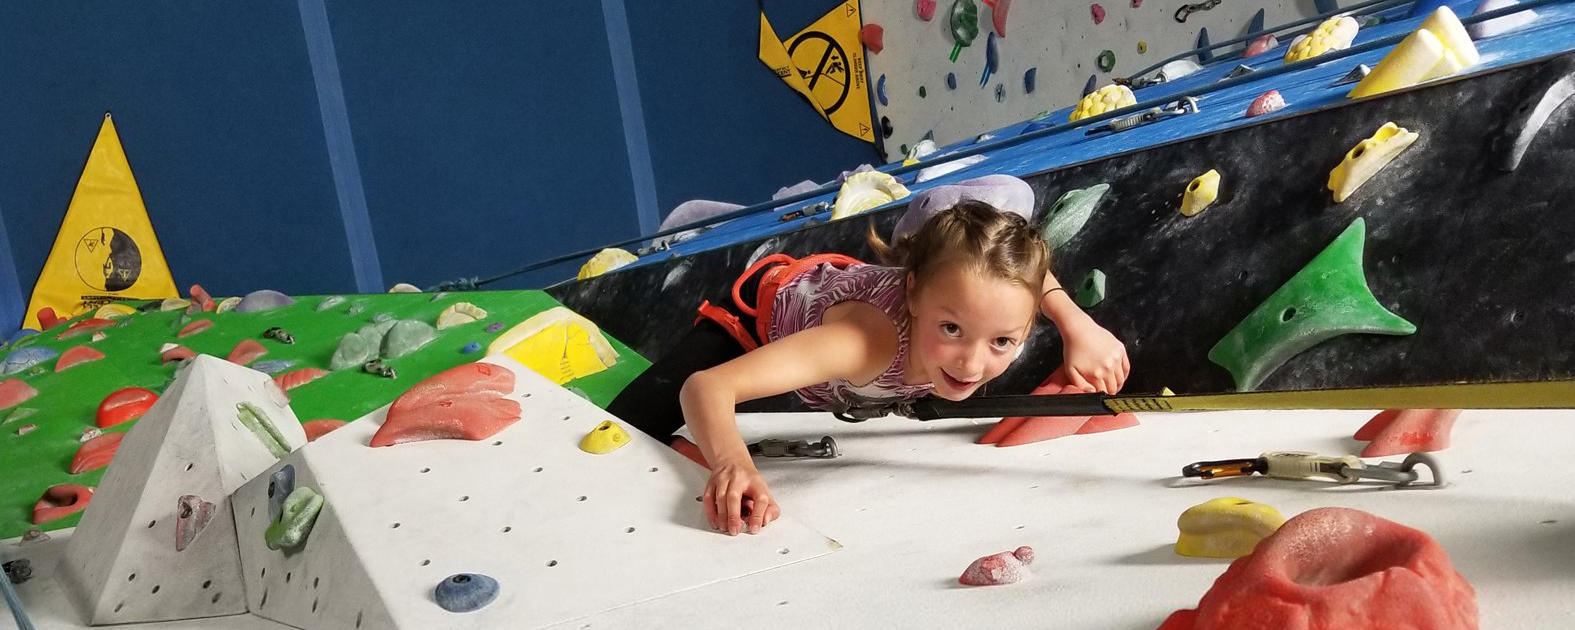 A young girl smiling while climbing up a wall at Arq Mountain Centre in Cranbrook